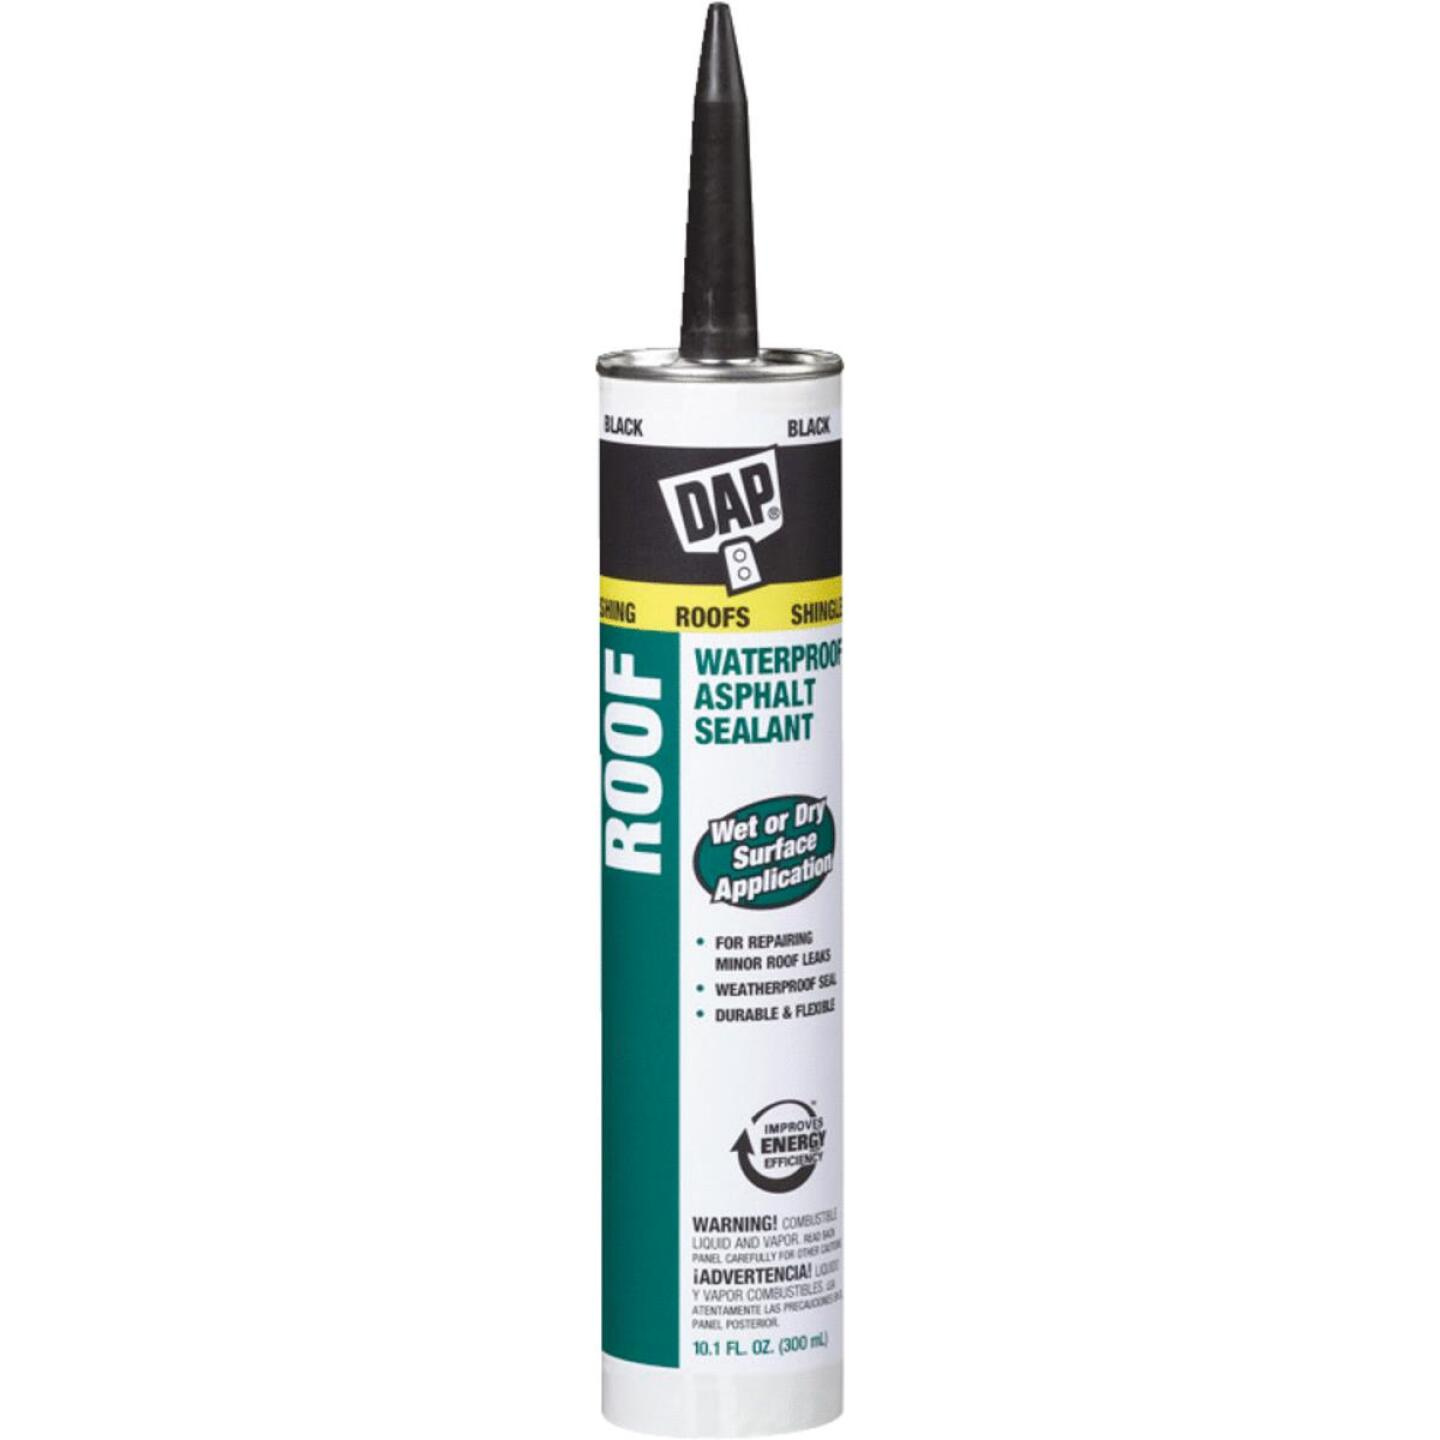 DAP 10.1 Oz. Waterproof Roof Sealant Image 1